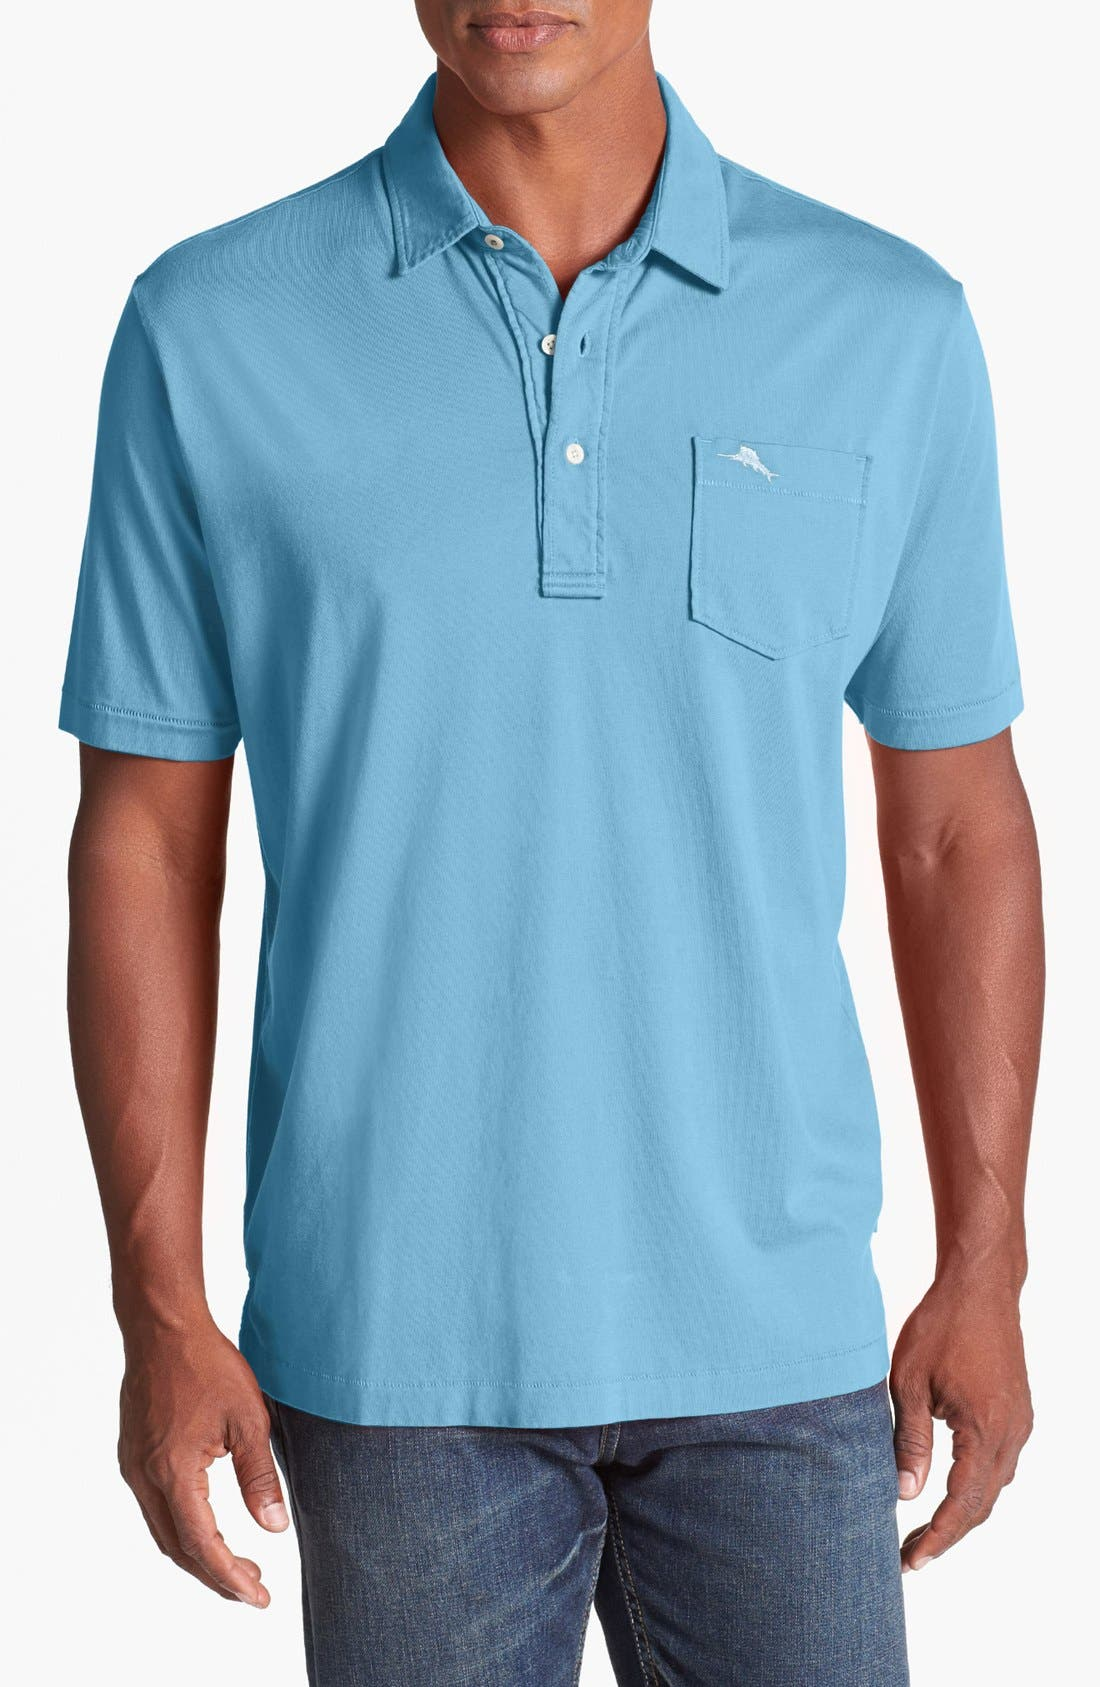 Main Image - Tommy Bahama 'Bali Shore' Polo